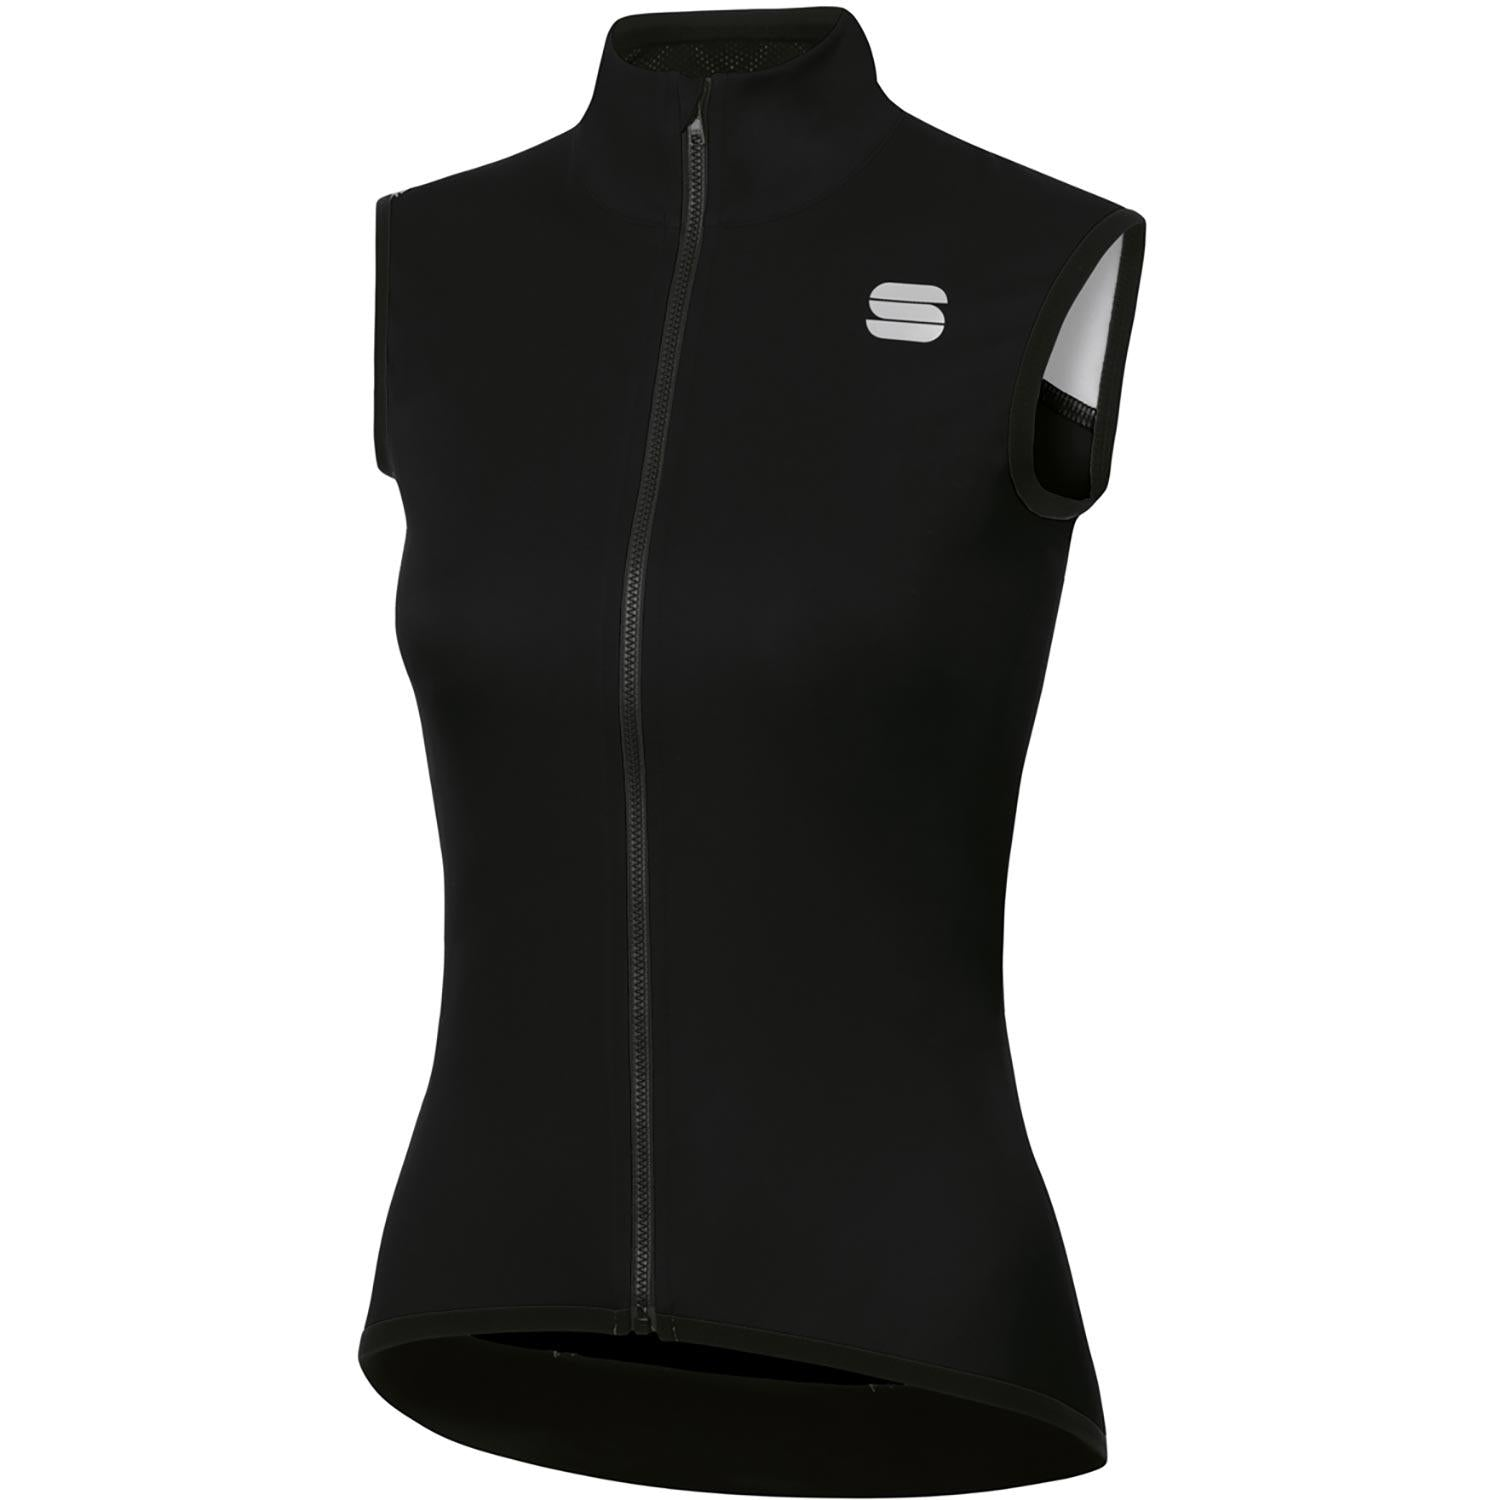 Sportful-Sportful Fiandre Light NoRain Women's Vest-Black-XS-SF205190021-saddleback-elite-performance-cycling